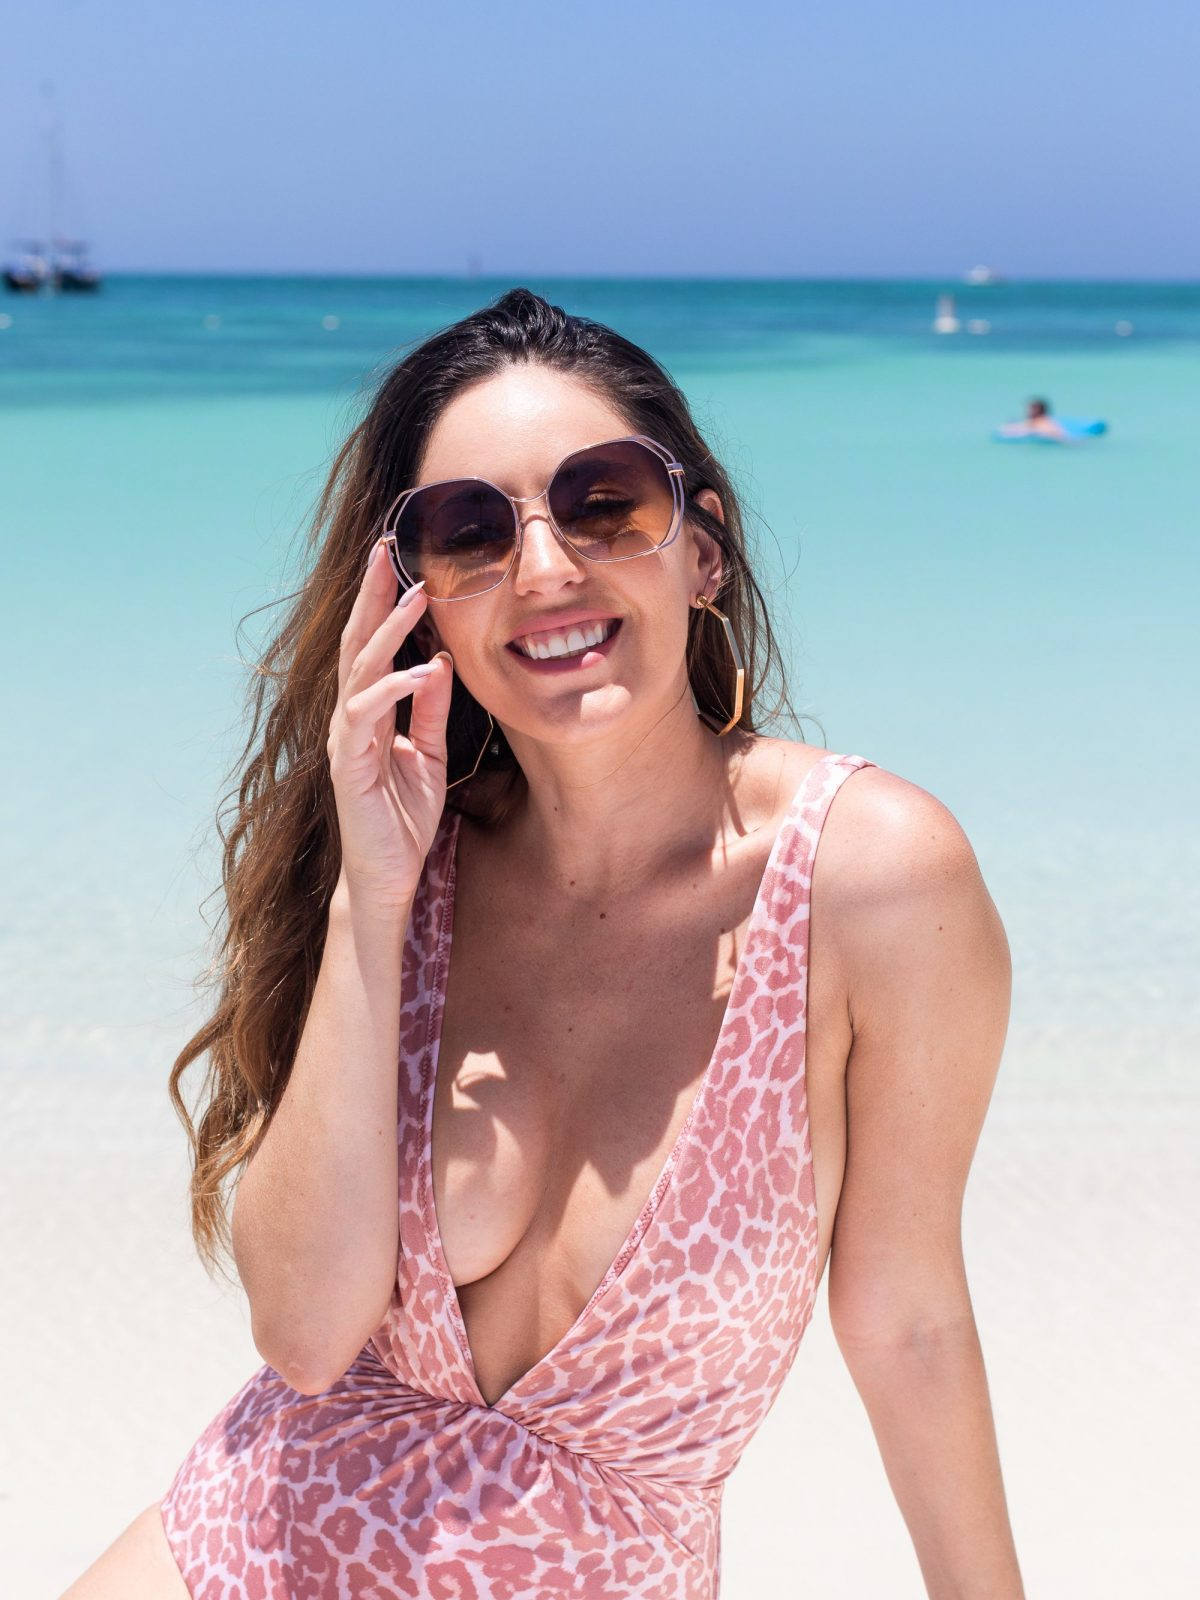 pink leopard swimsuit, aruba marriott stellaris, chasing summer, shopbop Tori Praver Swimwear Andie One Piece, chic resort wear, what to wear on vacation